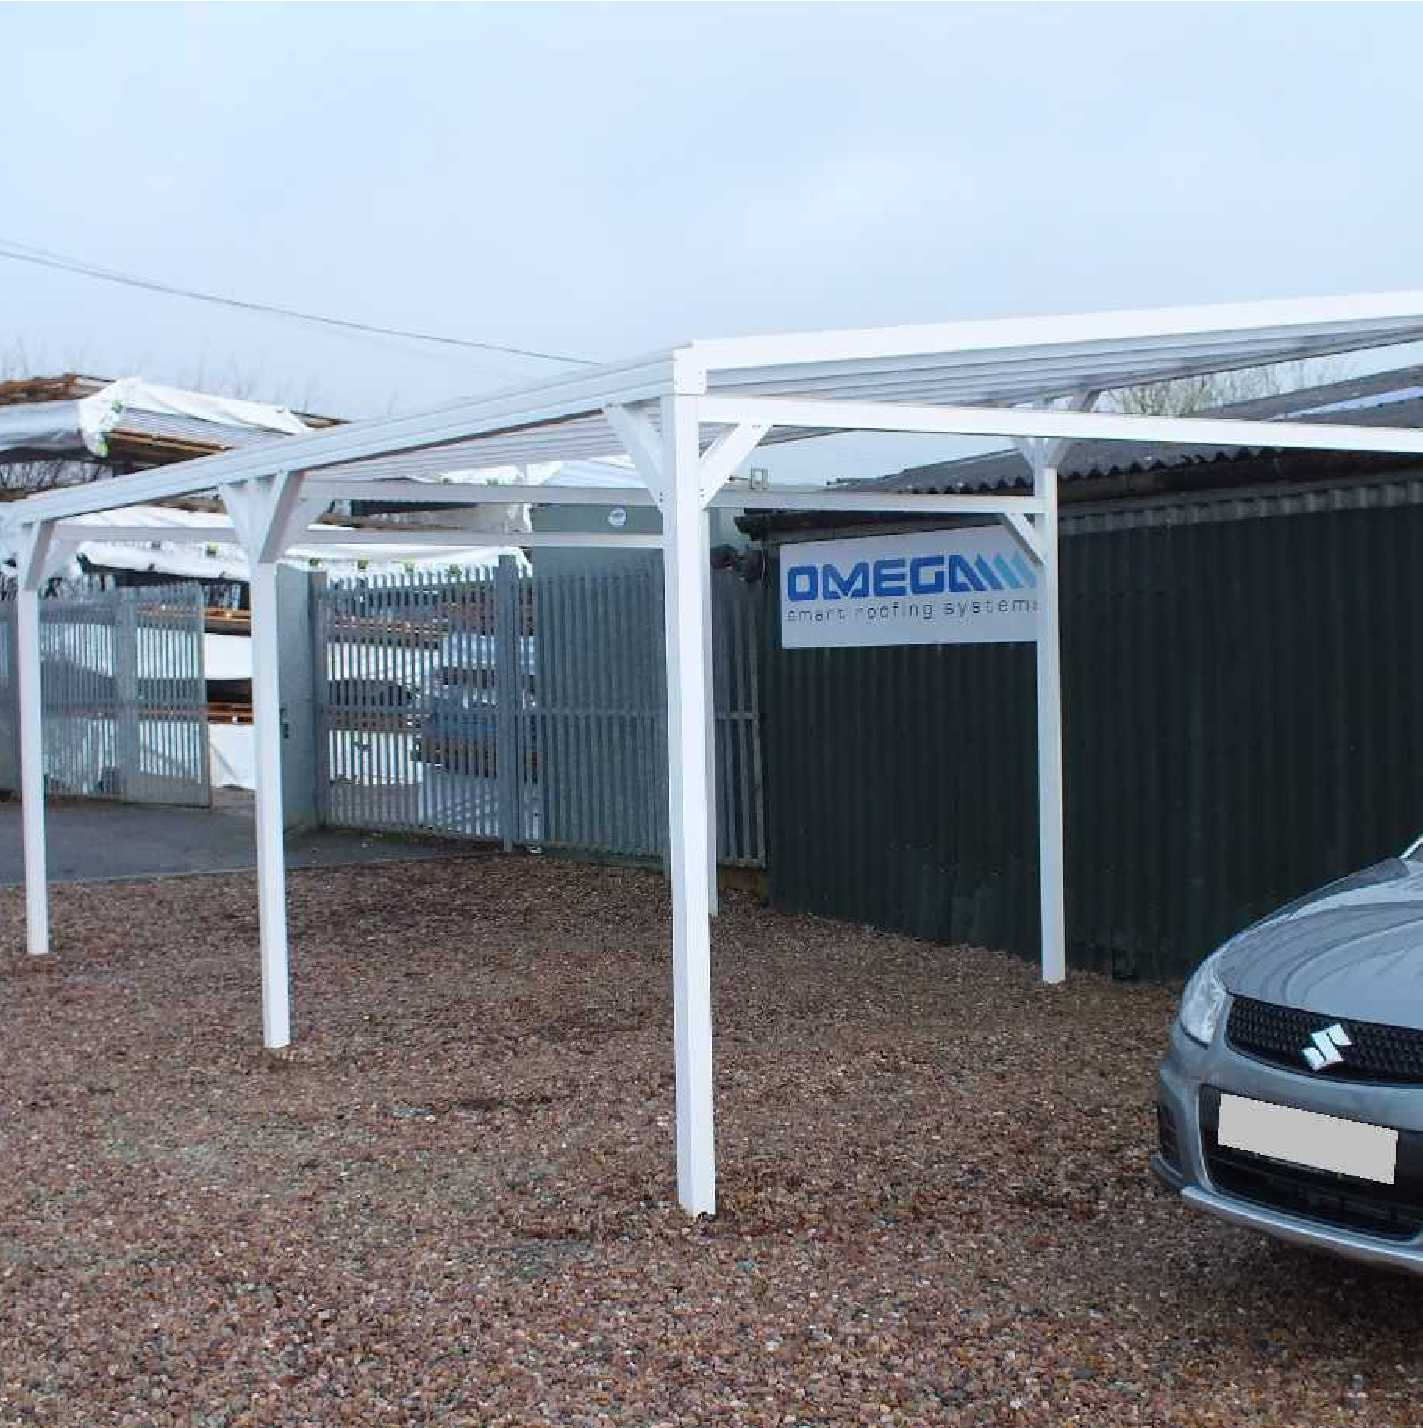 Omega Smart Canopy Lean To Kits - Free Standing with